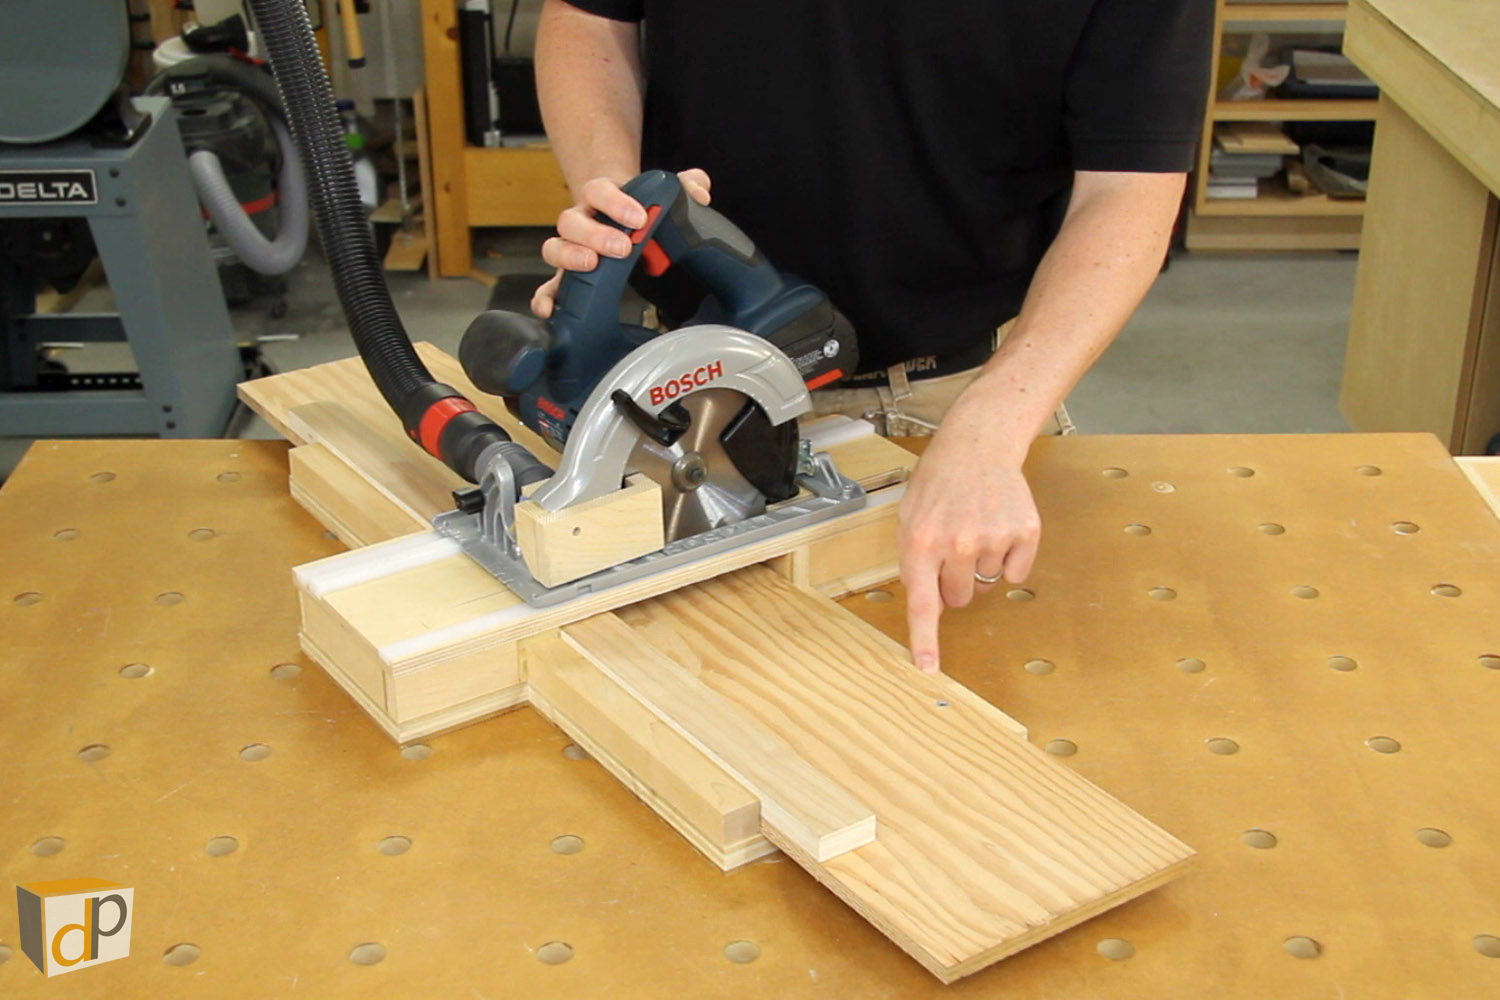 Dustless circular saw cross-cut jig with sub-base and sub-fence installed.